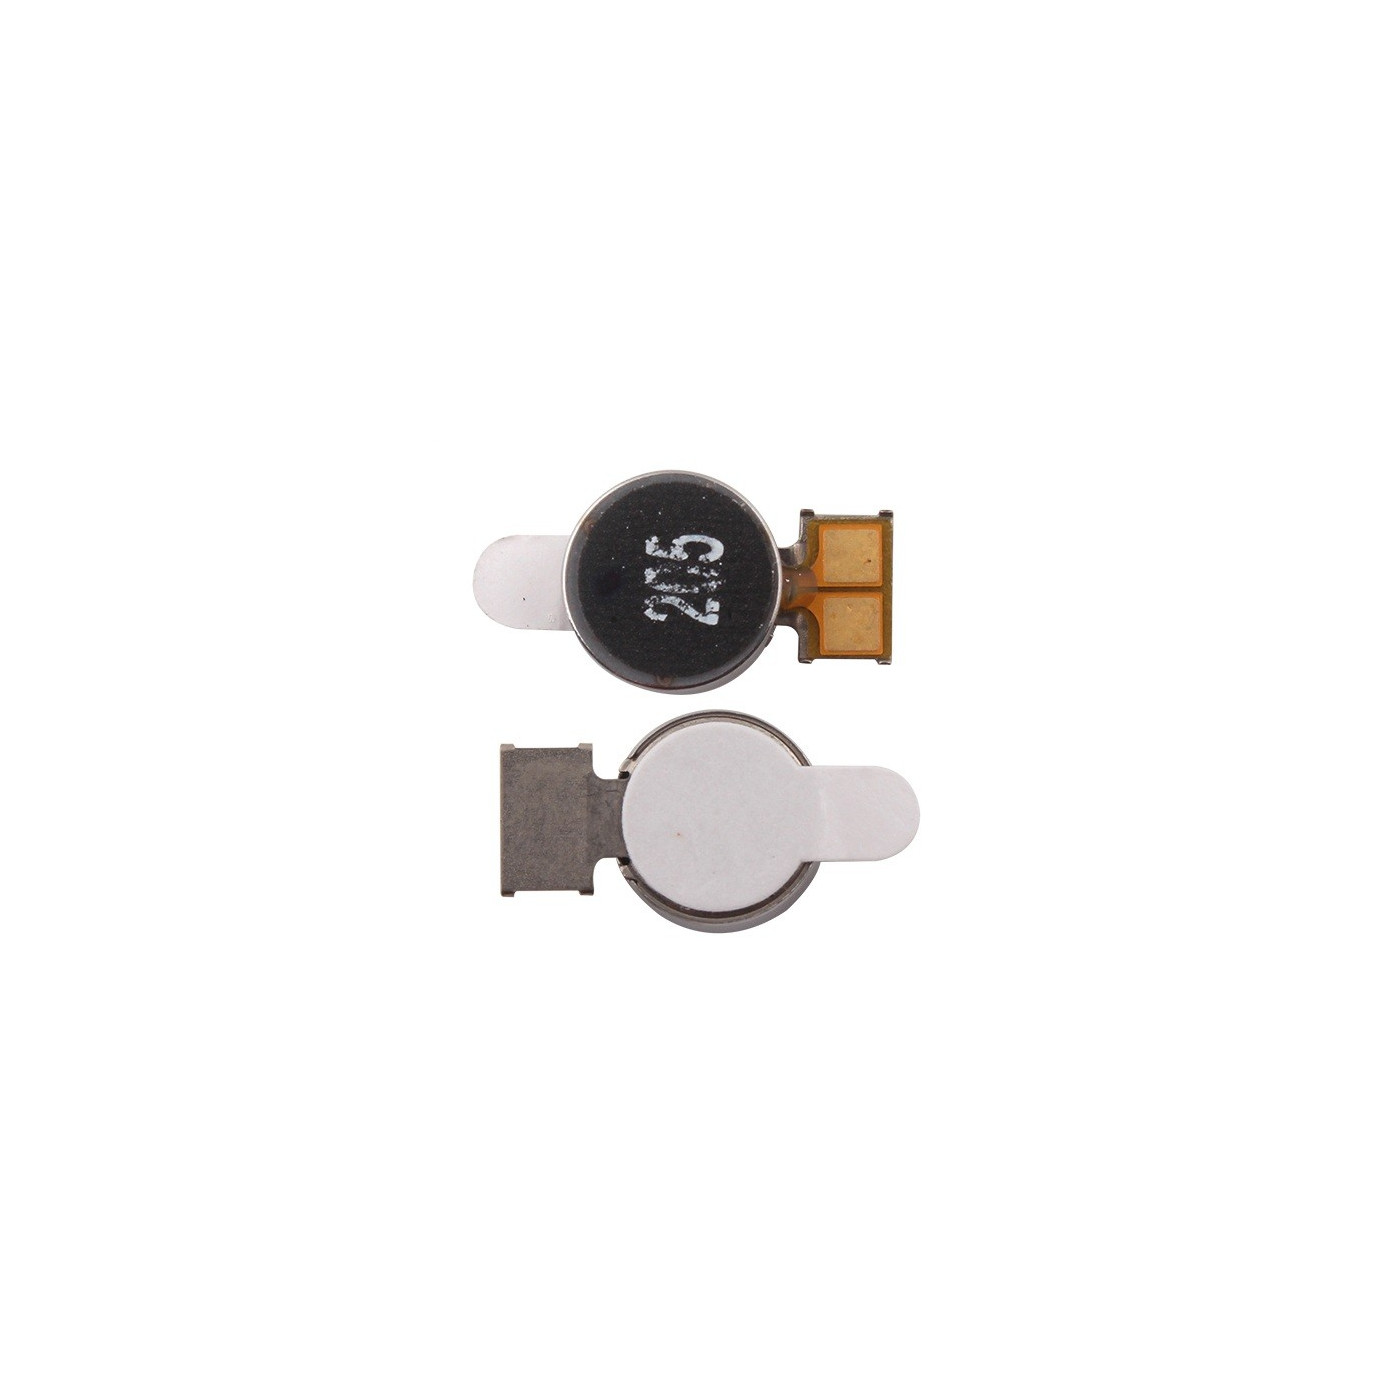 Vibration Motor Replacement for samsung galaxy S7 G930F